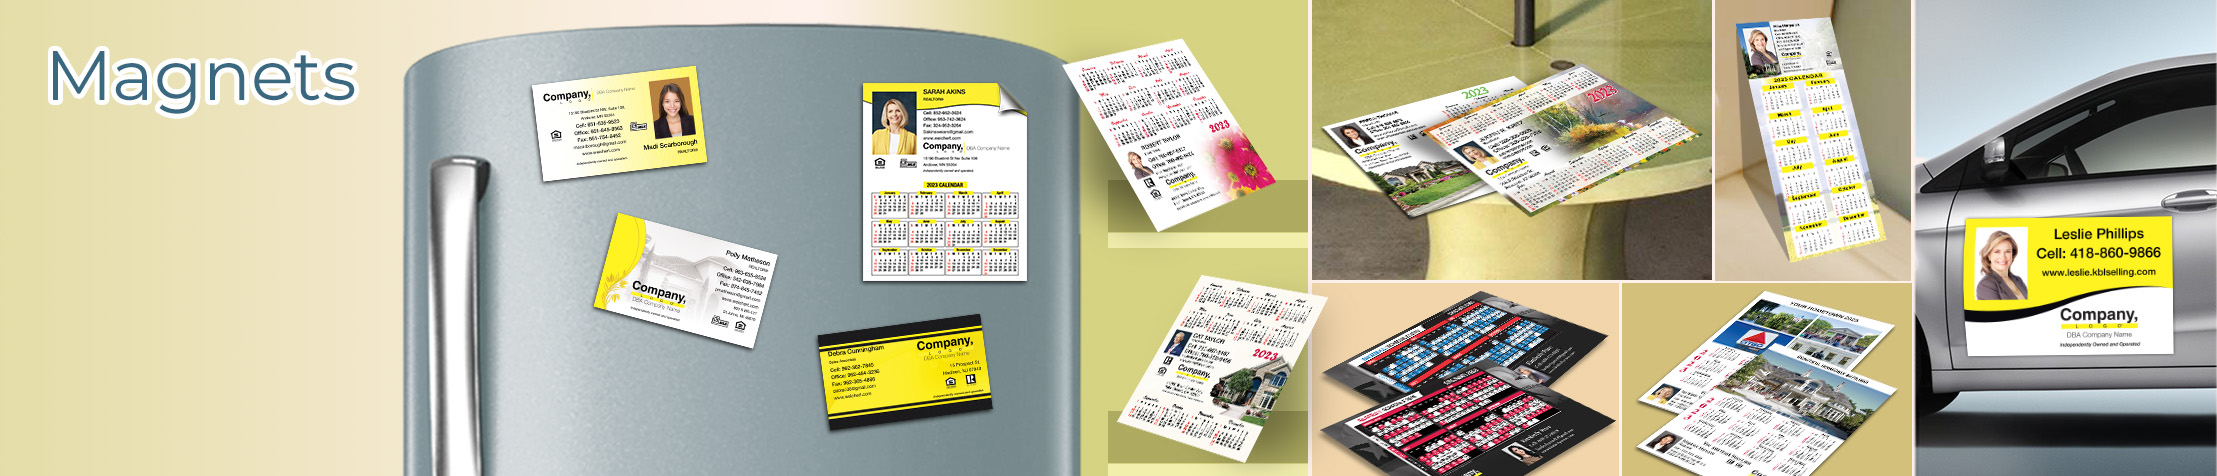 Weichert Real Estate Magnets - Weichert car magnets, sports schedules, calendar magnets | BestPrintBuy.com